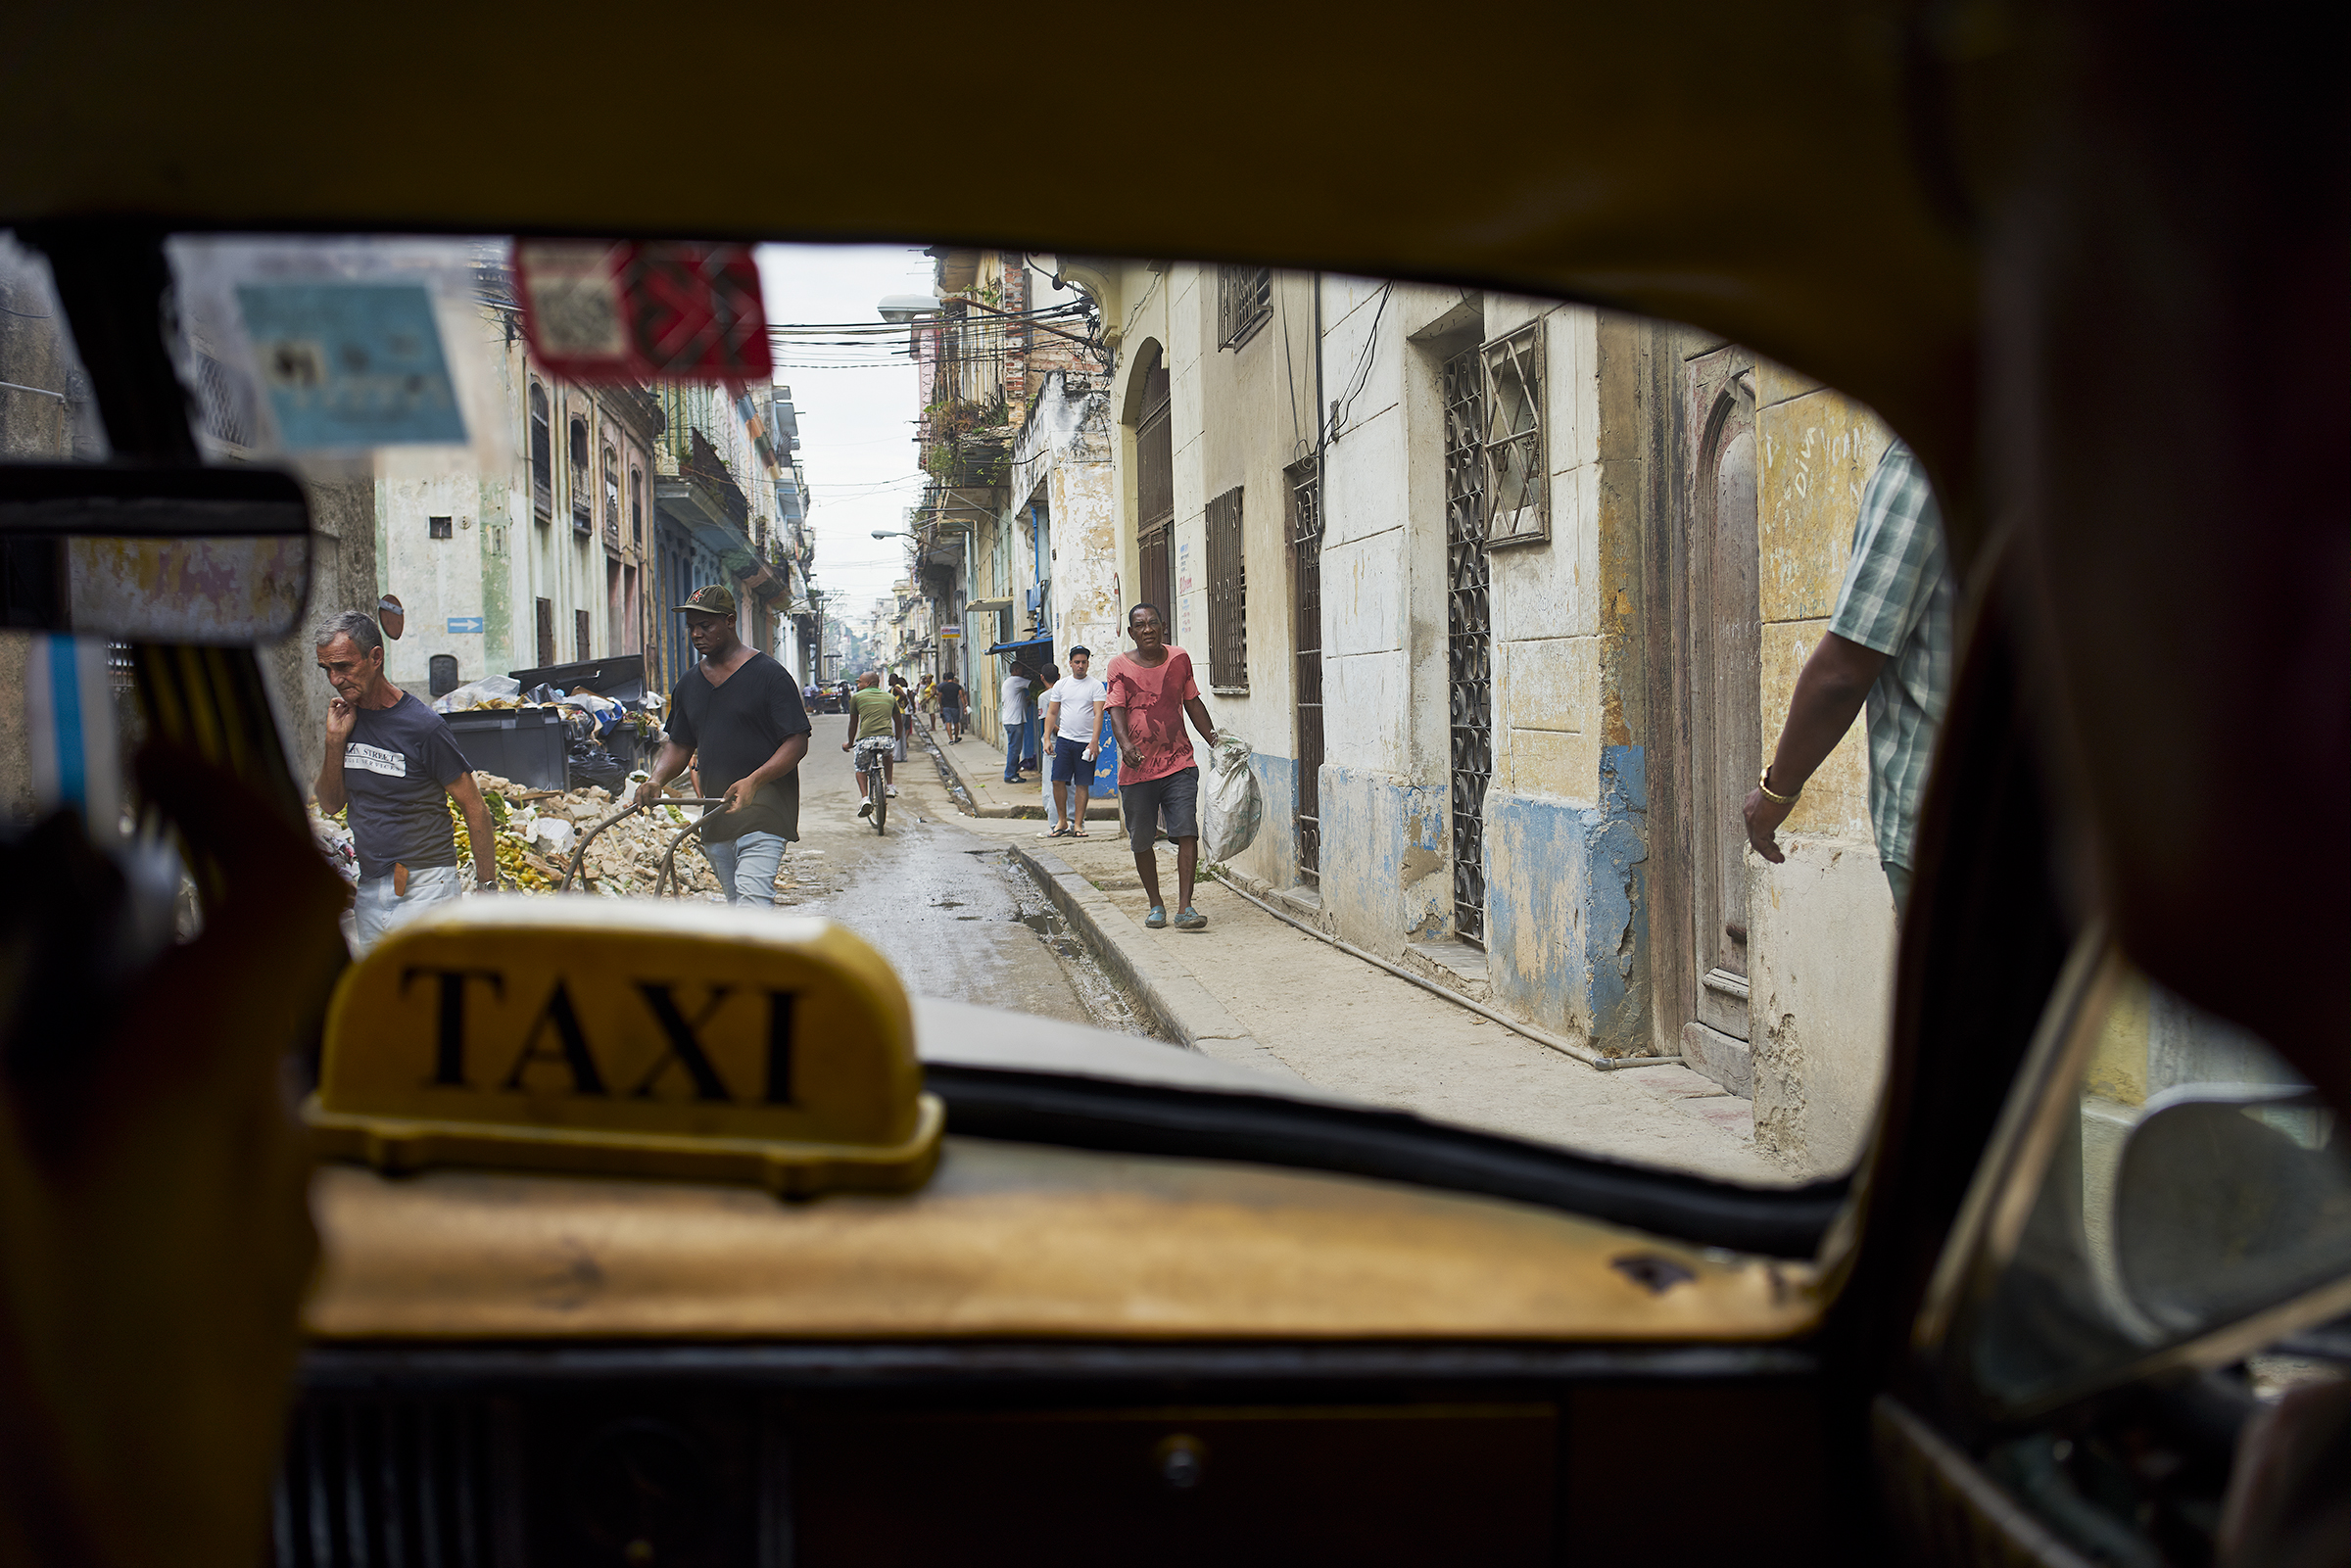 09 View from cab Havana.jpg